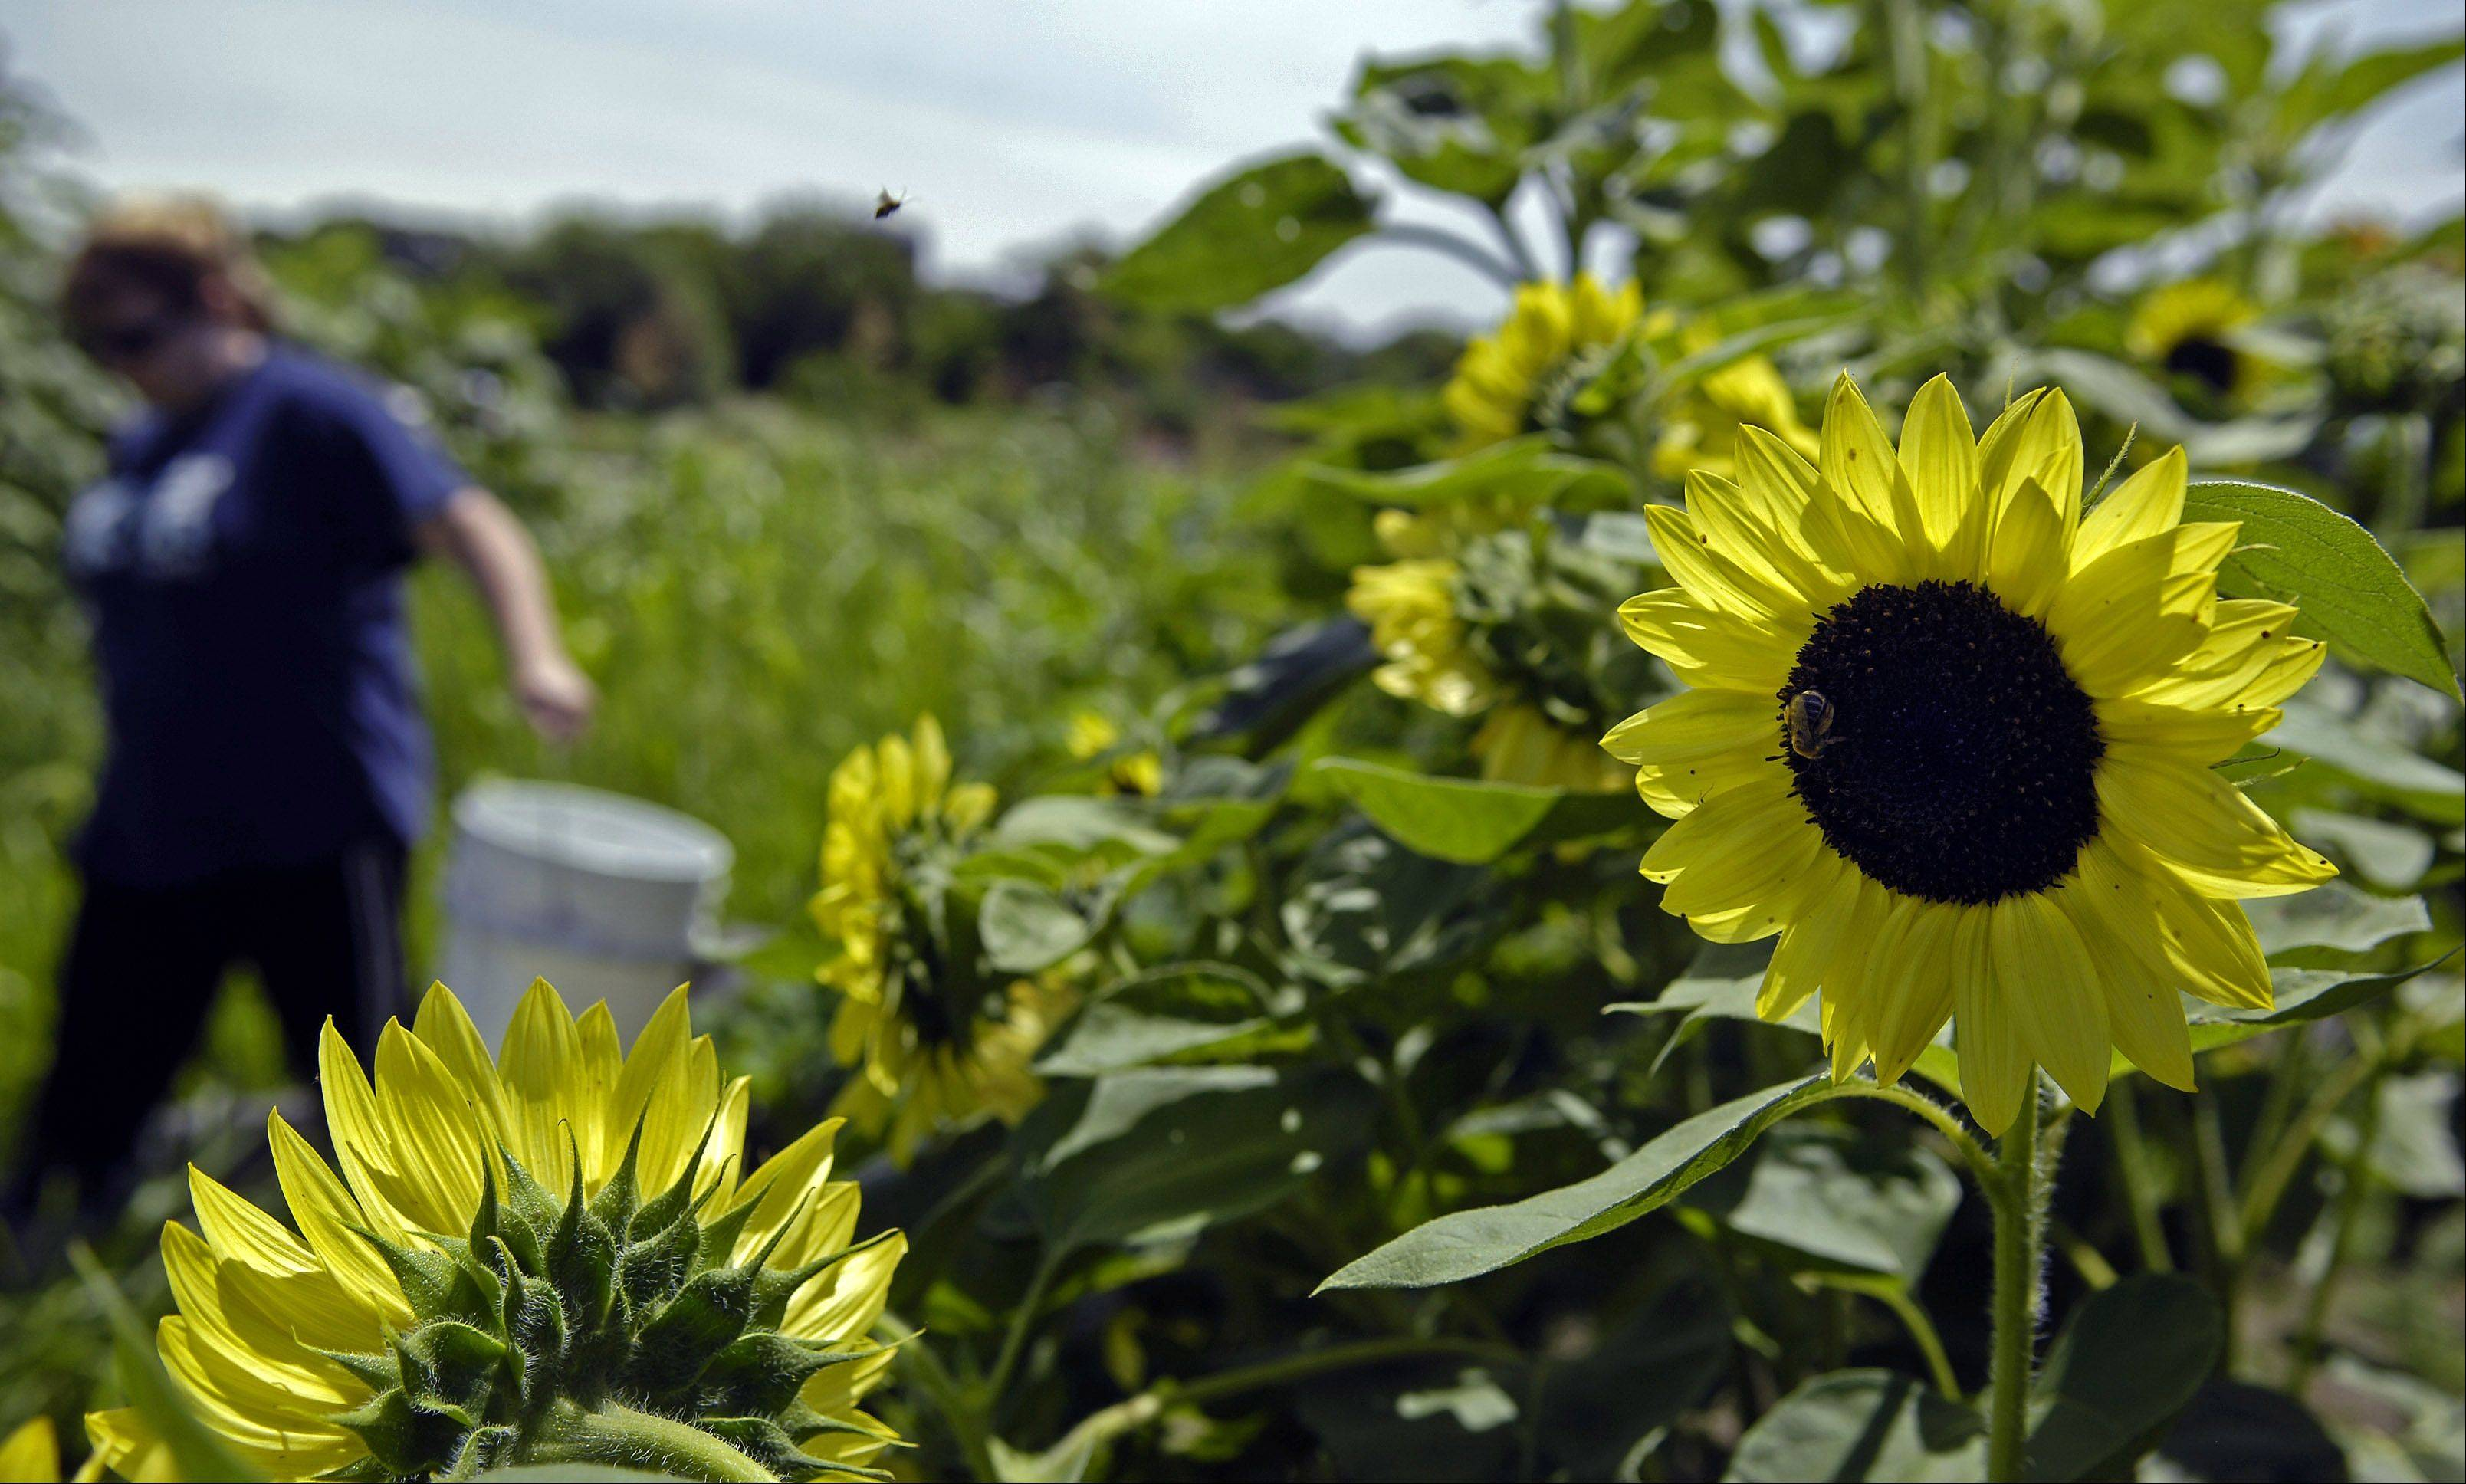 Bees buzz around Angela Banbury's sunflowers as she hauls water to her plot at the community gardens at Primrose Farm Park in St. Charles. Geneva's own community garden is set to open soon.